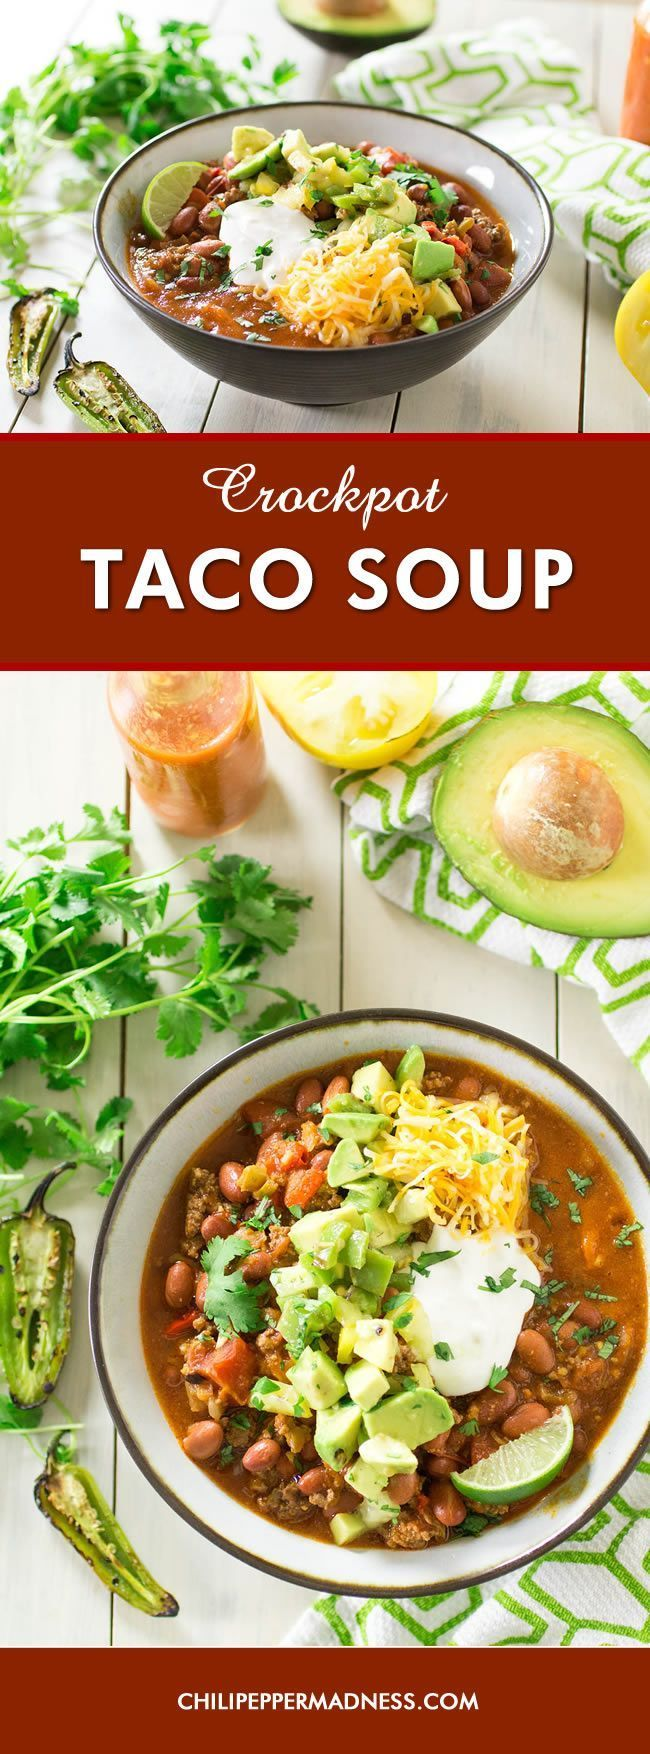 Crock Pot Taco Soup - A recipe for hearty, chili-like soup with all your favorite taco ingredients, including ground beef, lots of chili peppers and tomatoes, taco seasonings and all the fixins, all cooked up slow in the crockpot. Super easy!